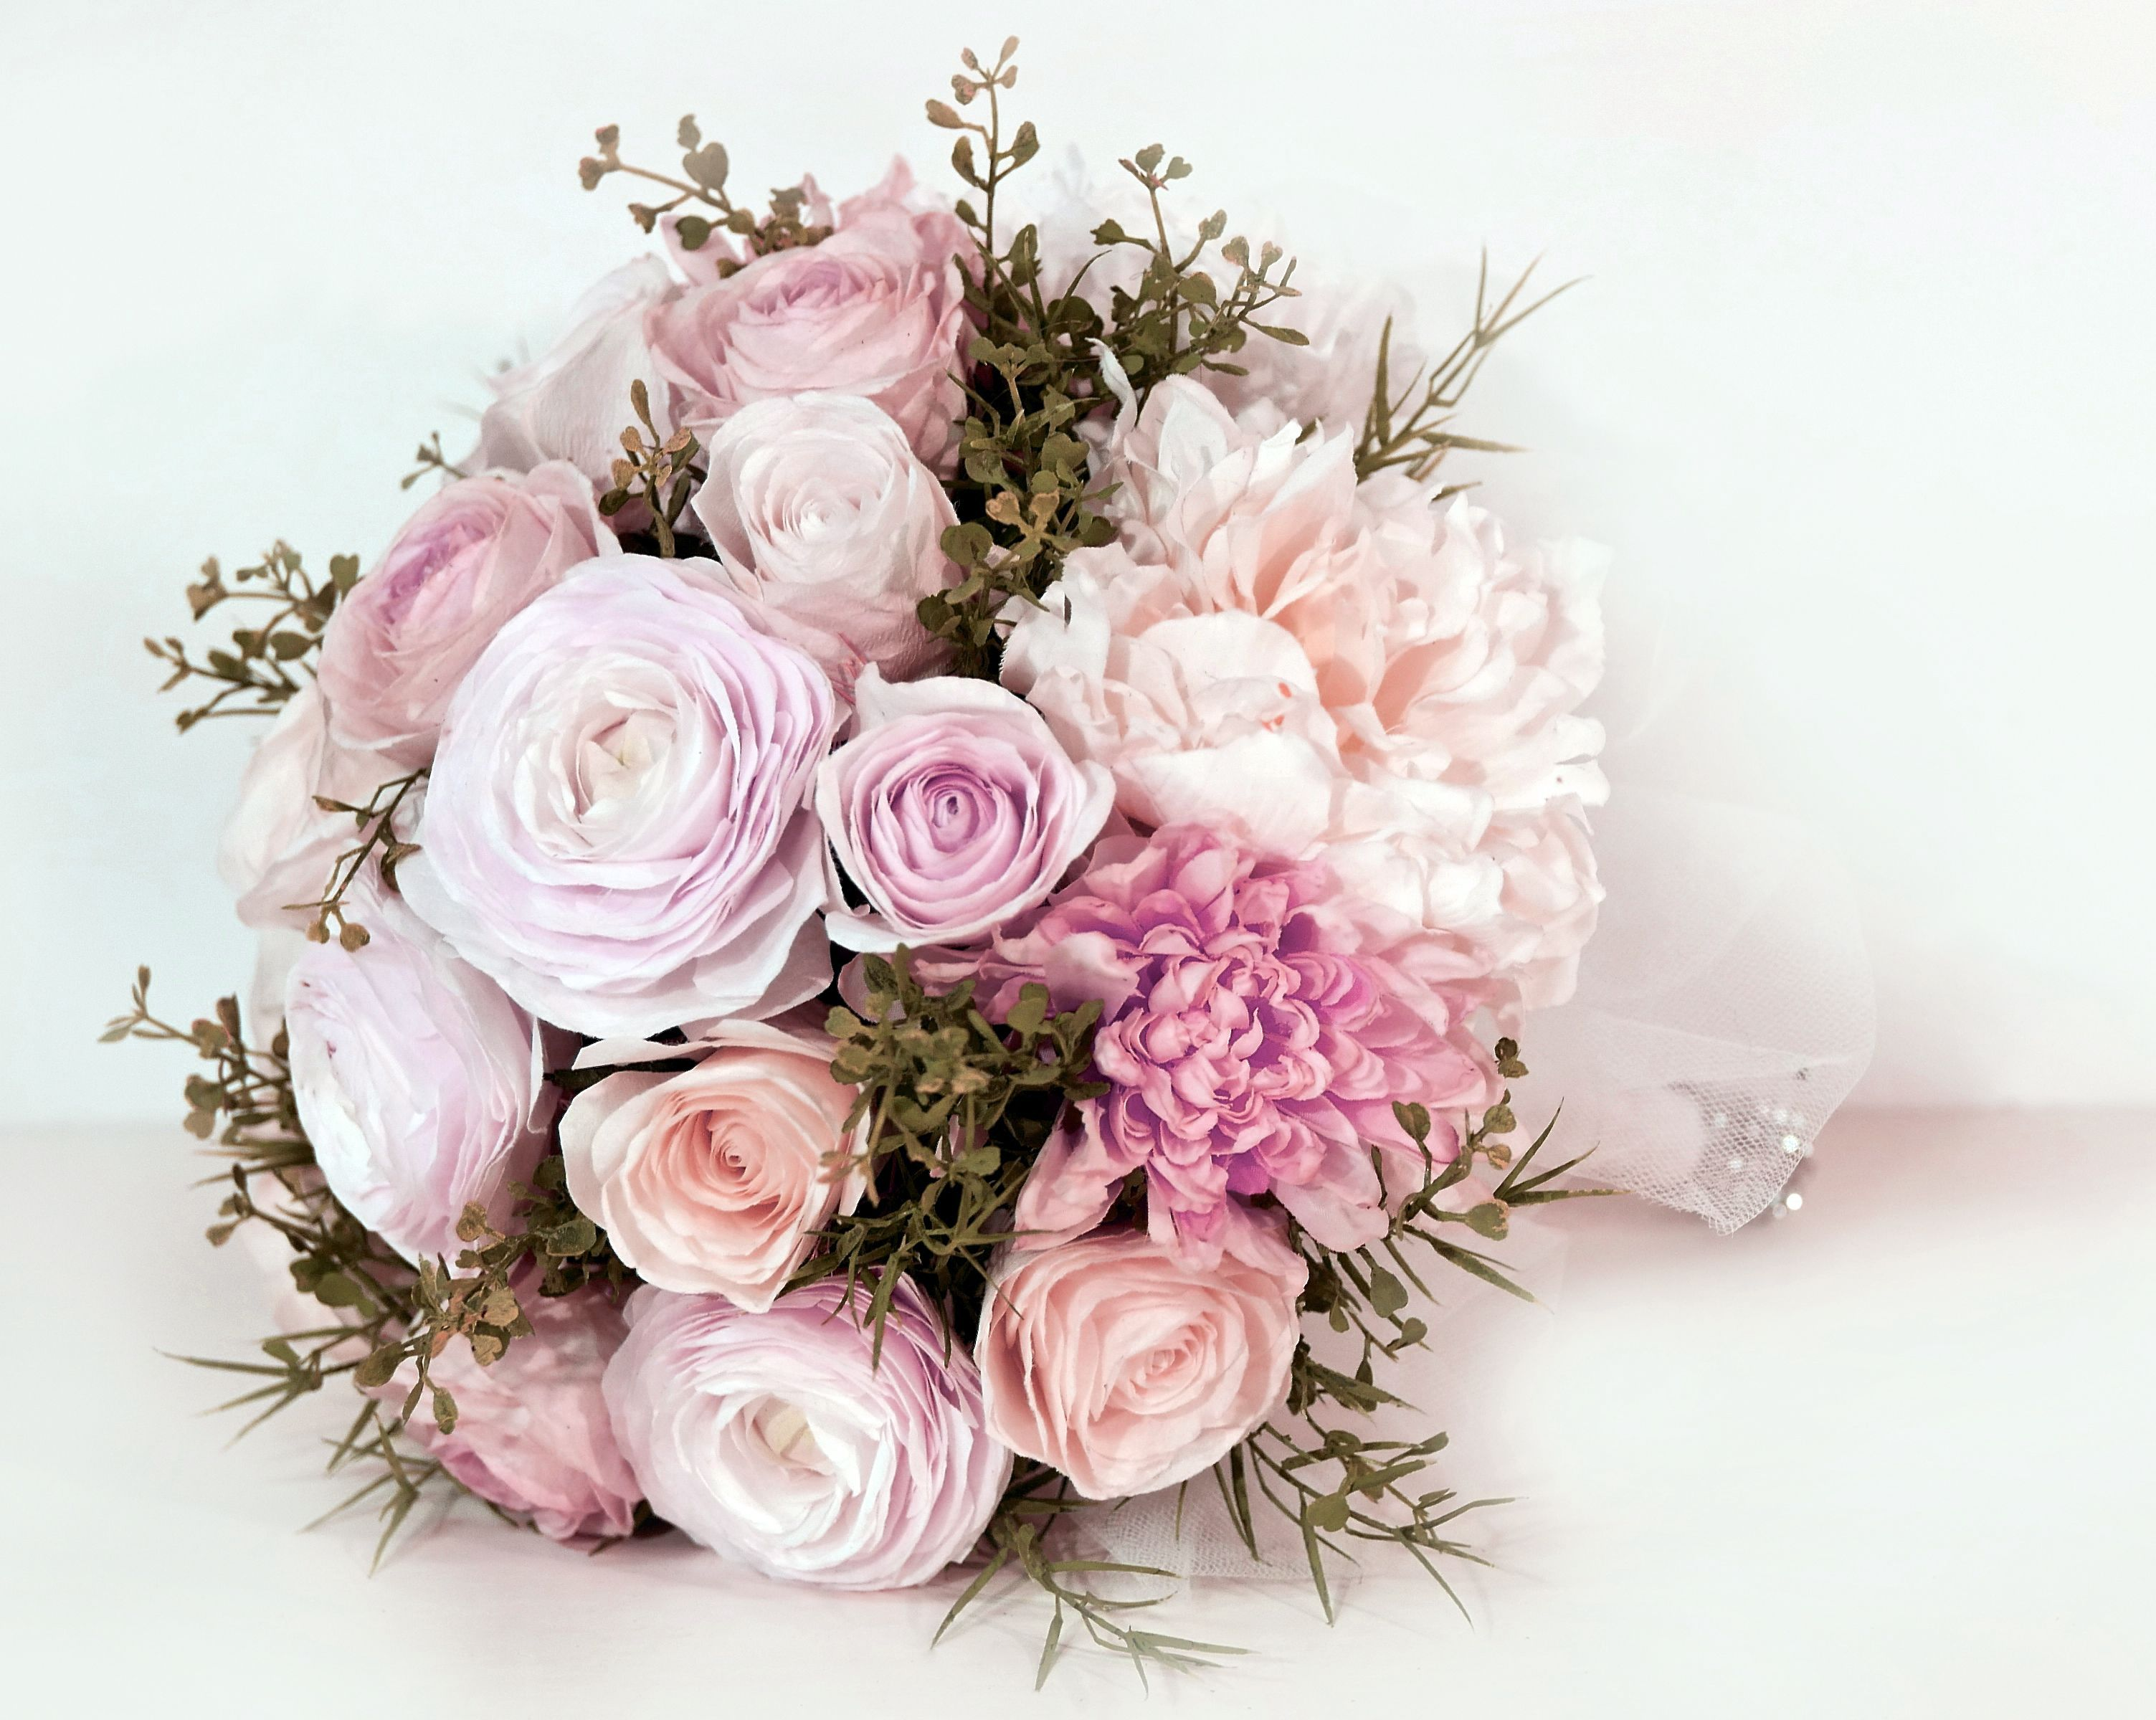 Simply breathtaking handmade paper flowers created by Roses N\' Lace ...